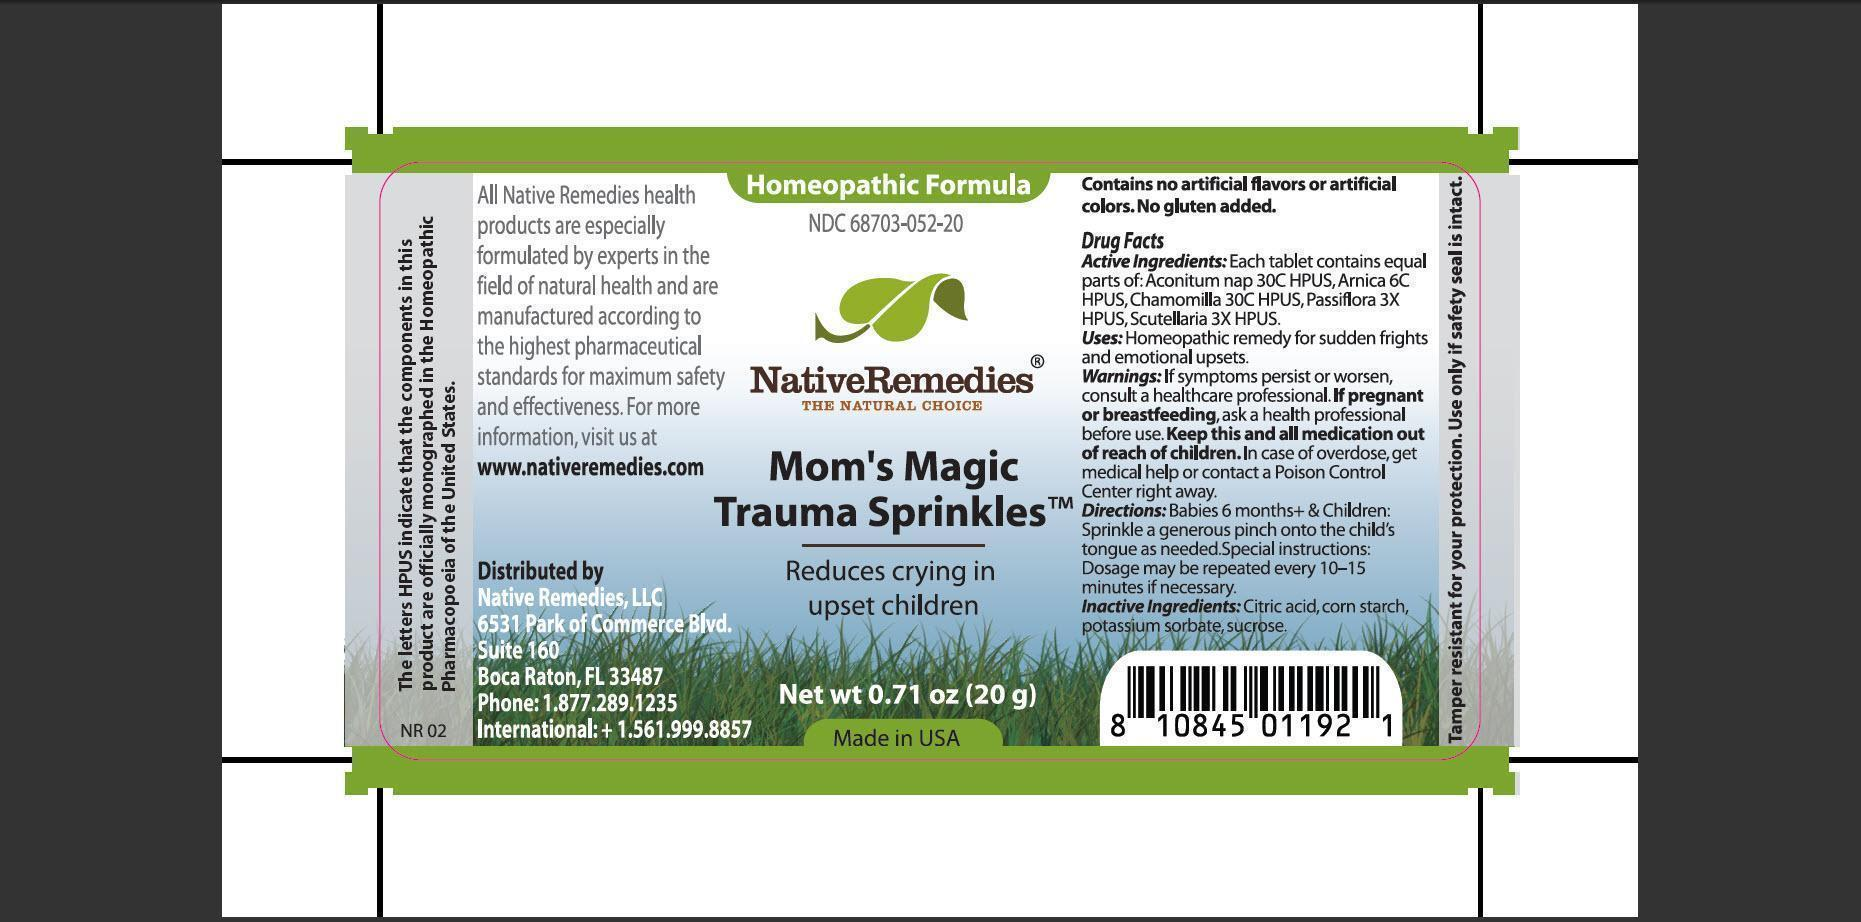 Moms Magic Trauma Sprinkles (Aconitum Nap, Arnica, Chamomilla, Passiflora, Scutellaria, Citric Acid, Corn Starch, Potassium Sorbate, Sucrose) Granule [Native Remedies, Llc]